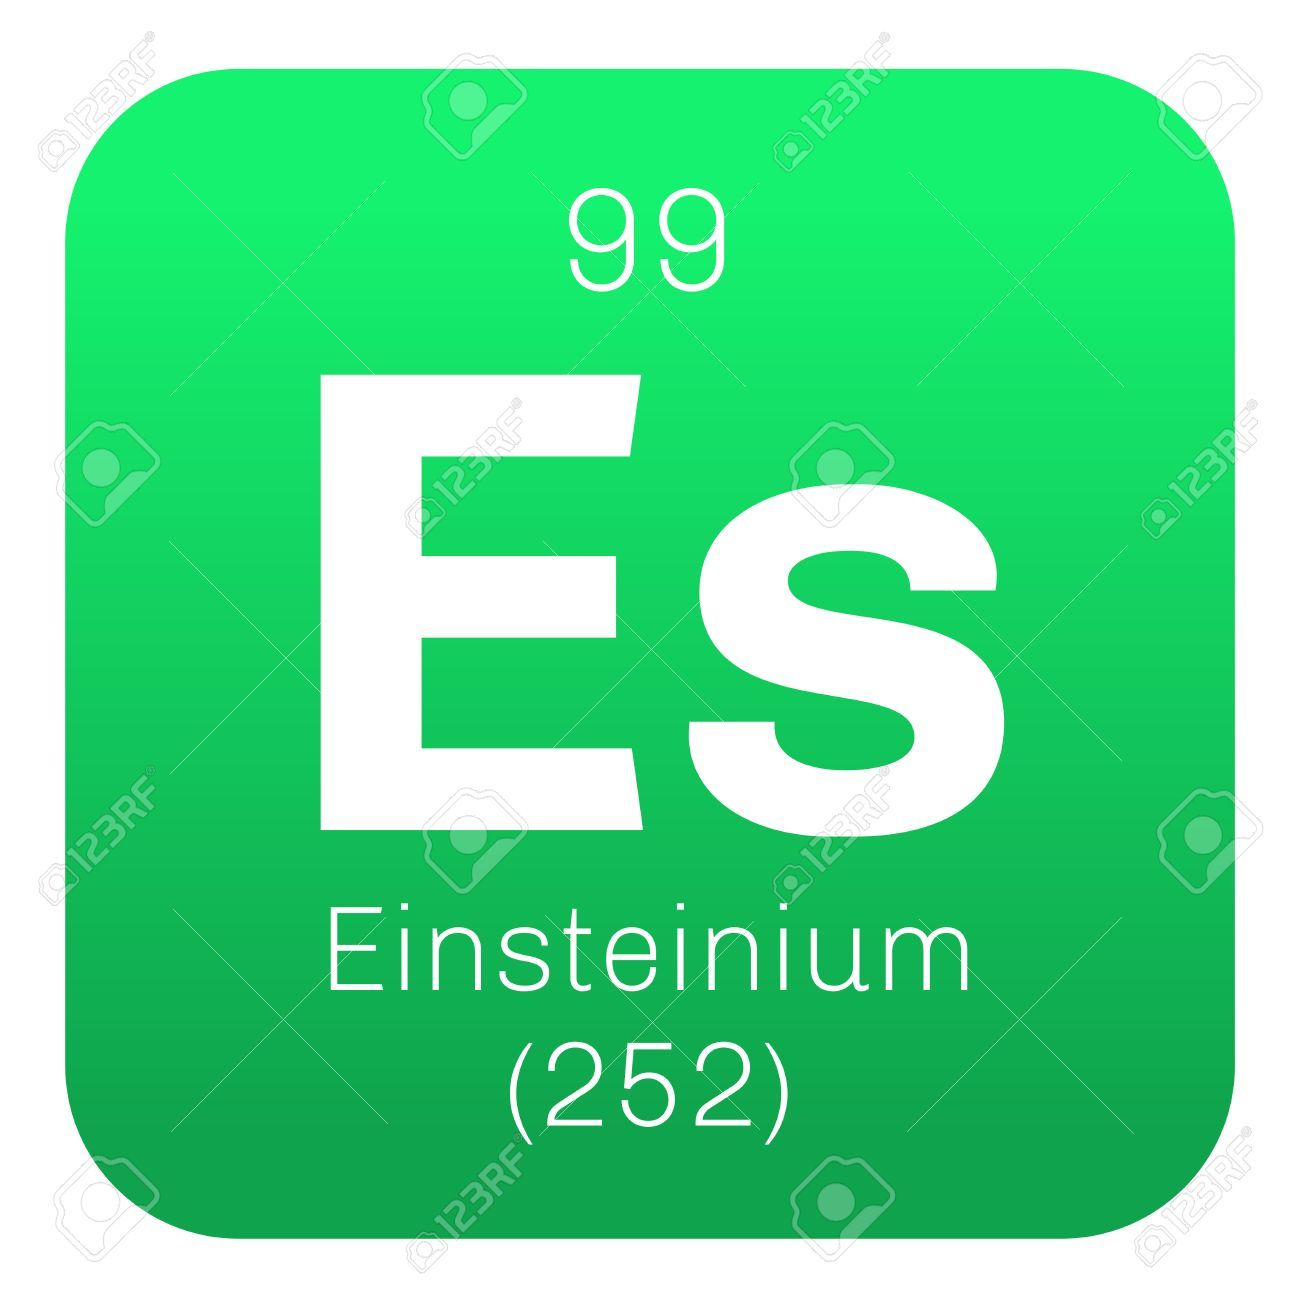 Einsteinium chemical element synthetic element colored icon einsteinium chemical element synthetic element colored icon with atomic number and atomic weight gamestrikefo Gallery